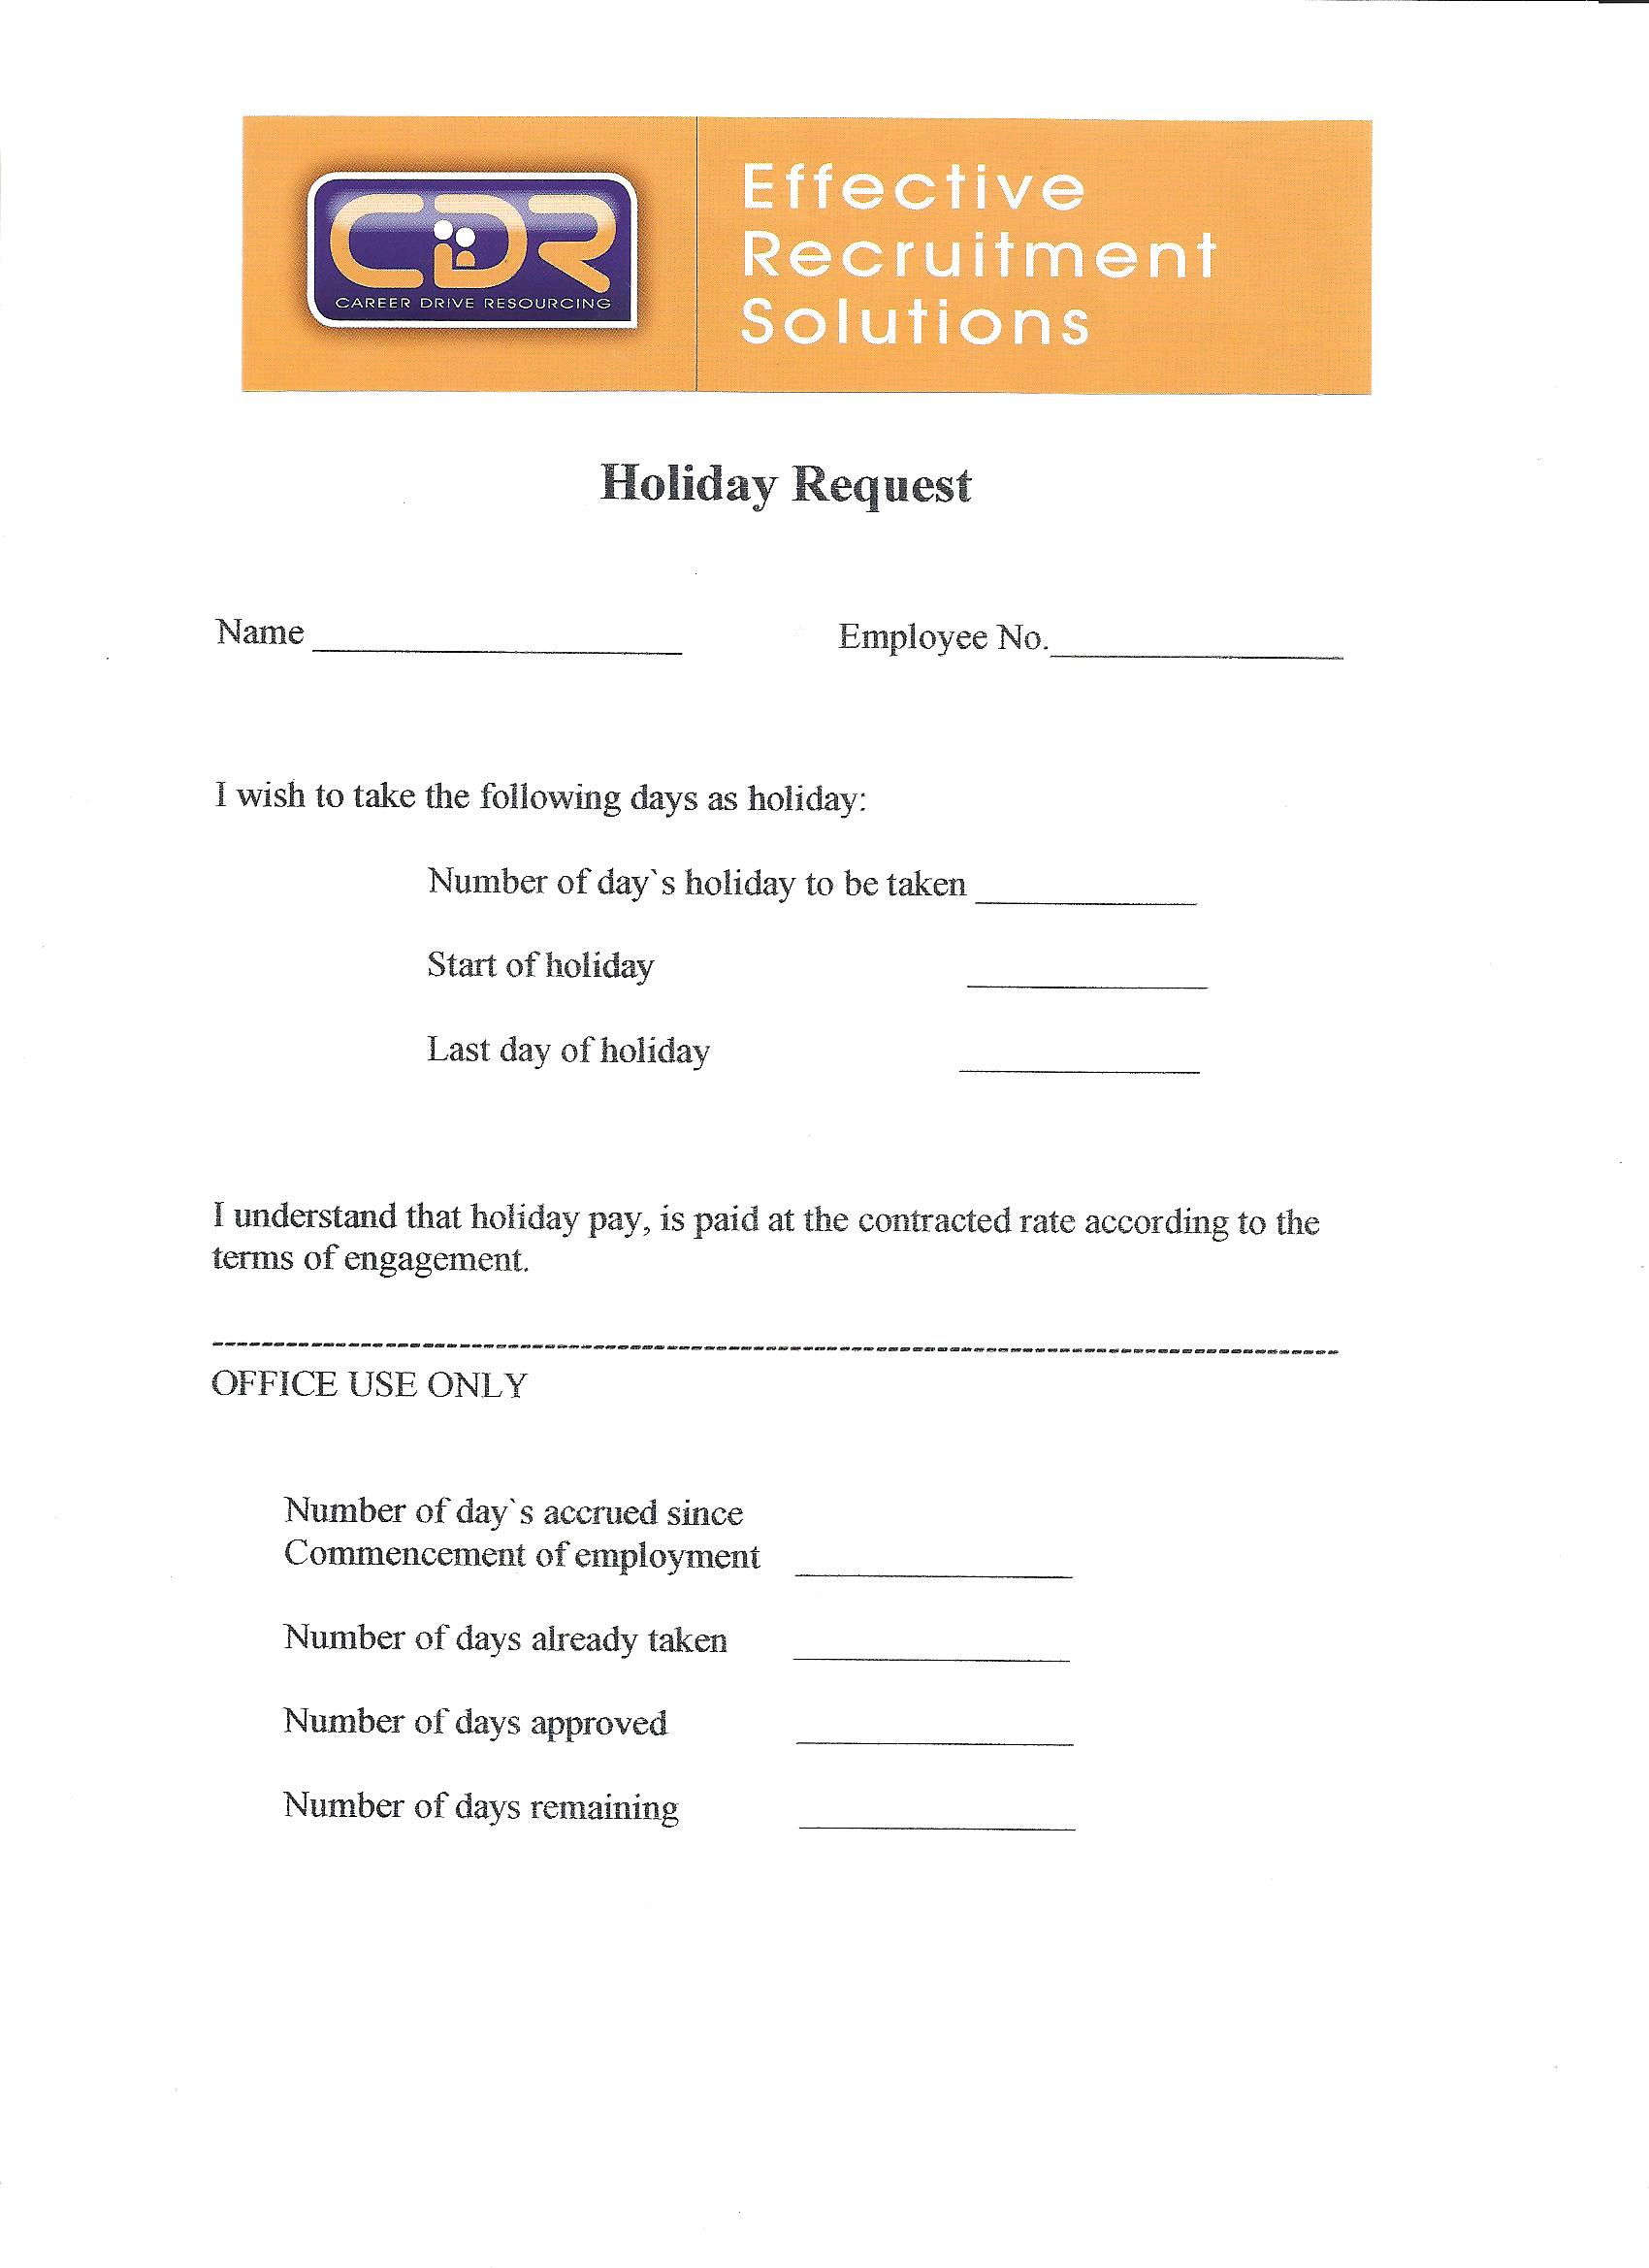 Doc780500 Holiday Request Form 10 holiday request form – Recruitment Request Form